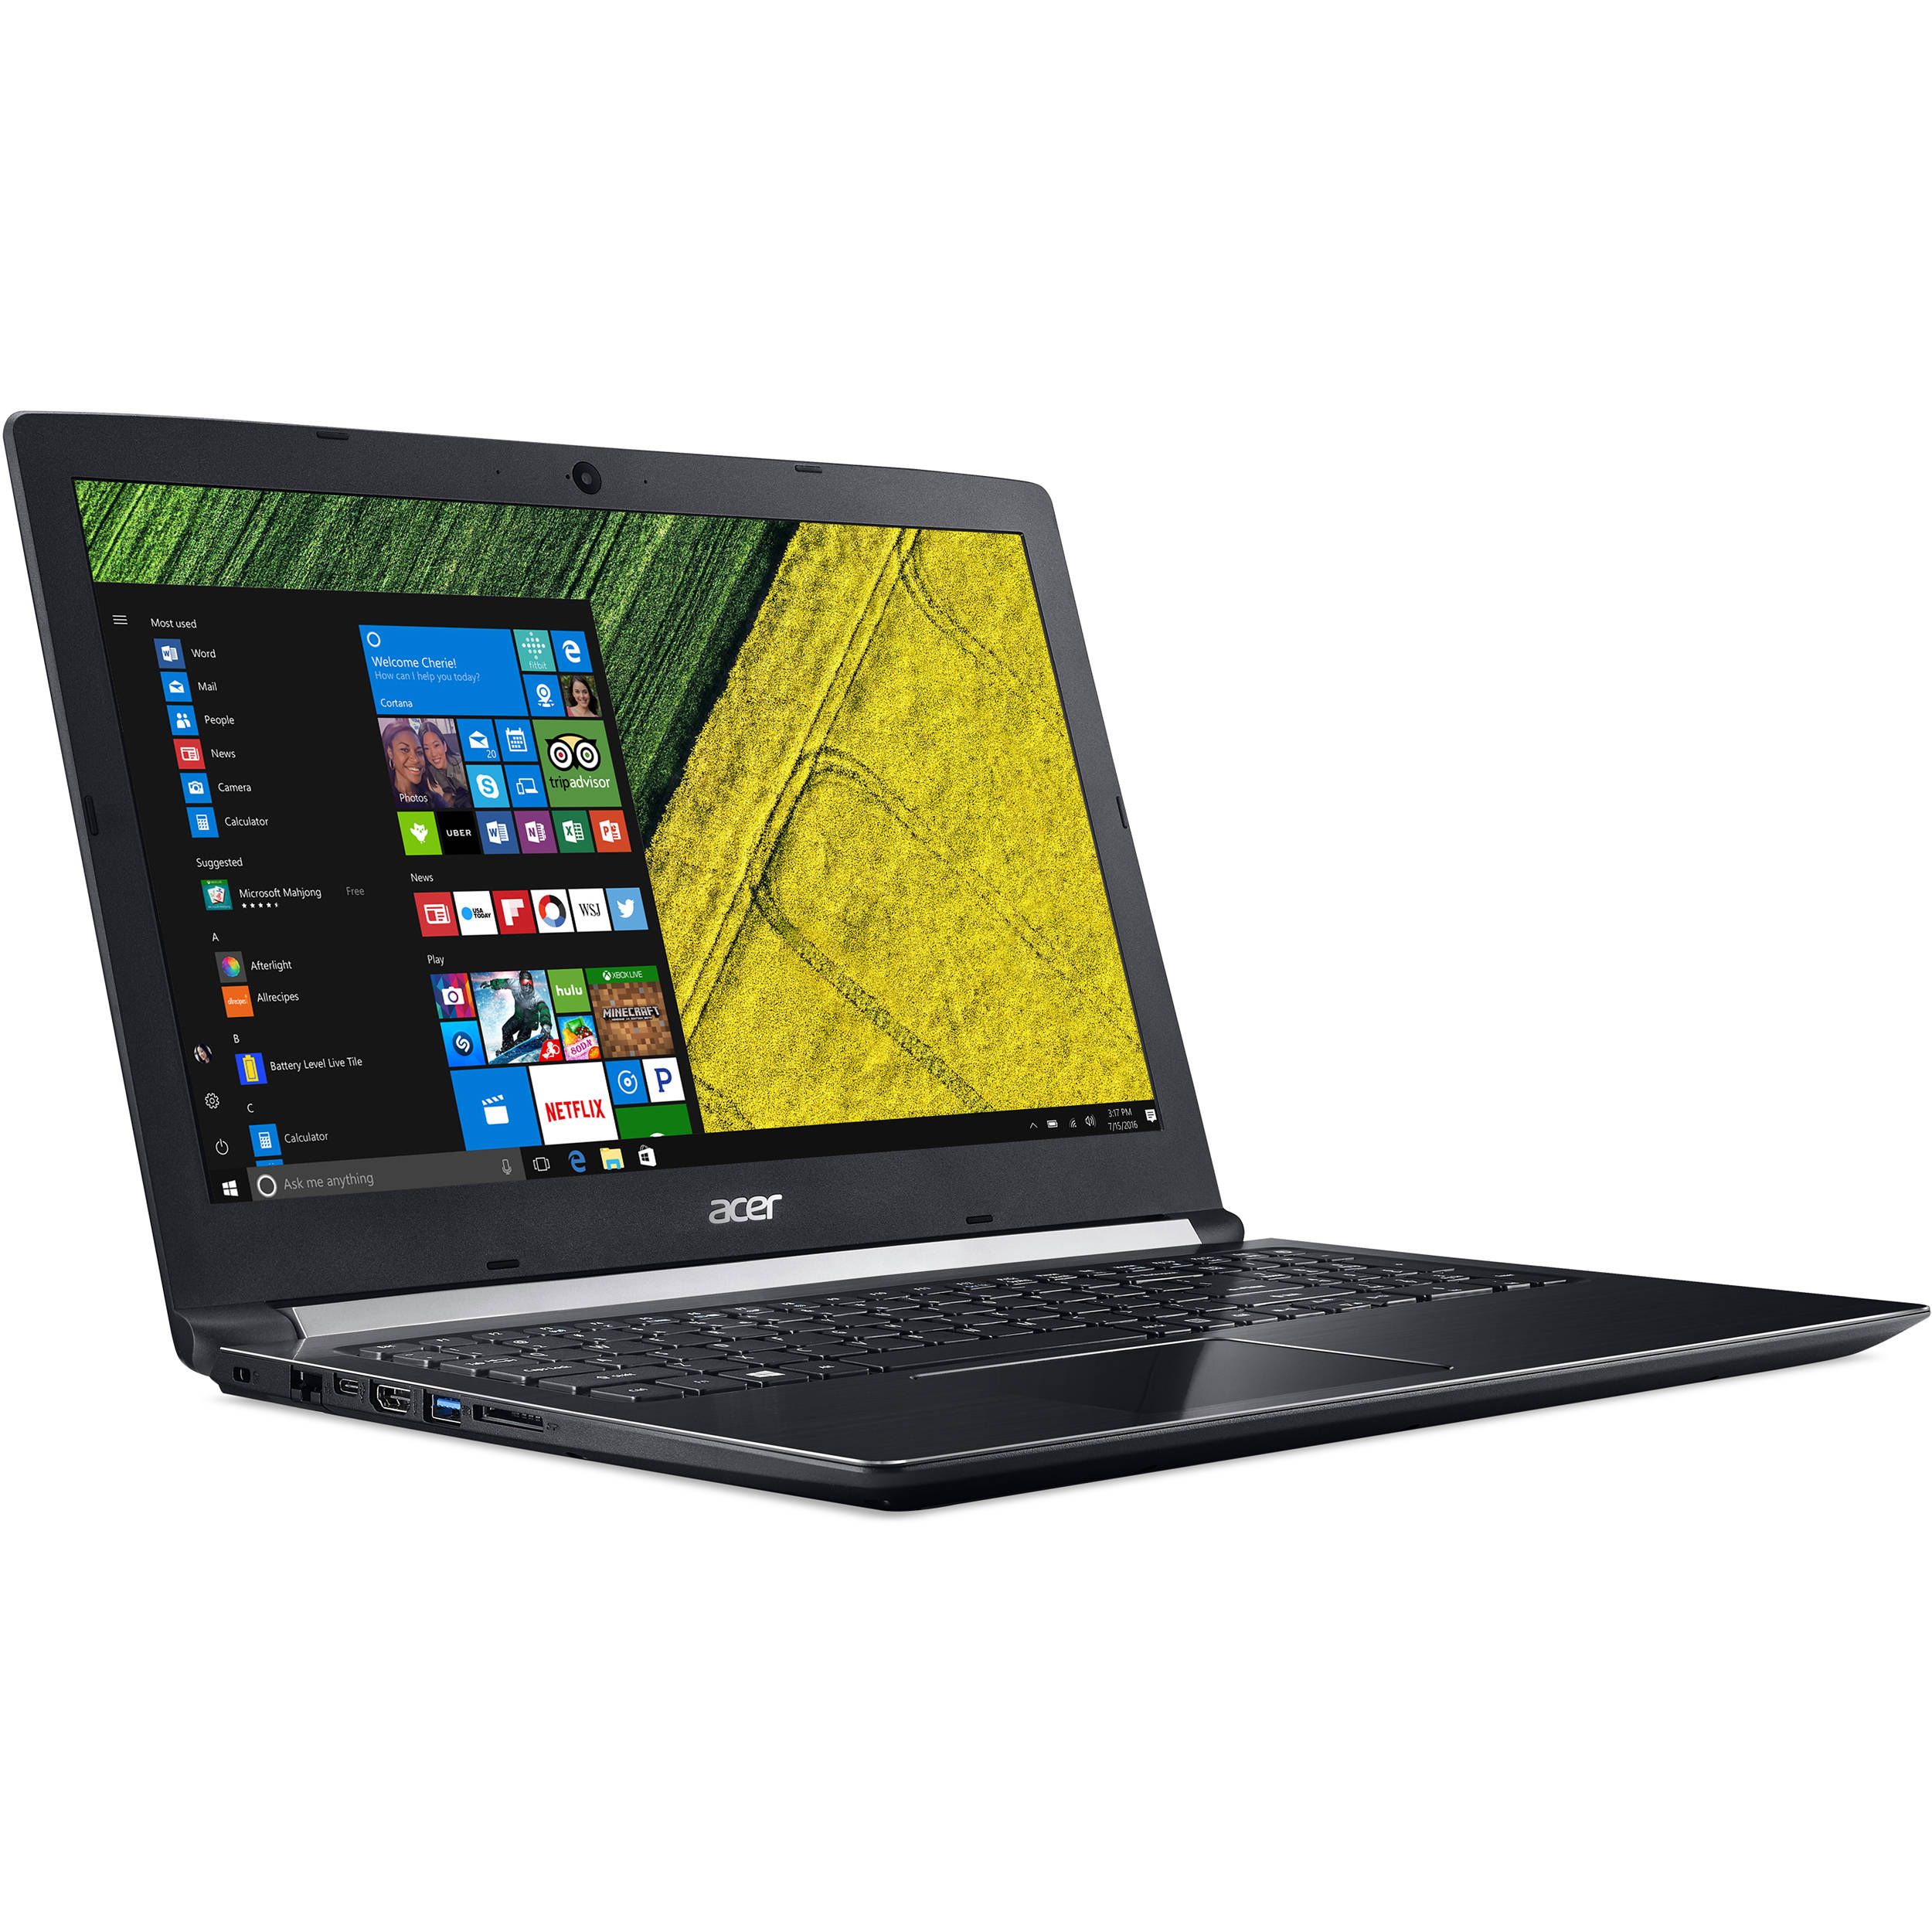 ACER ASPIRE SERIES DRIVER FOR WINDOWS